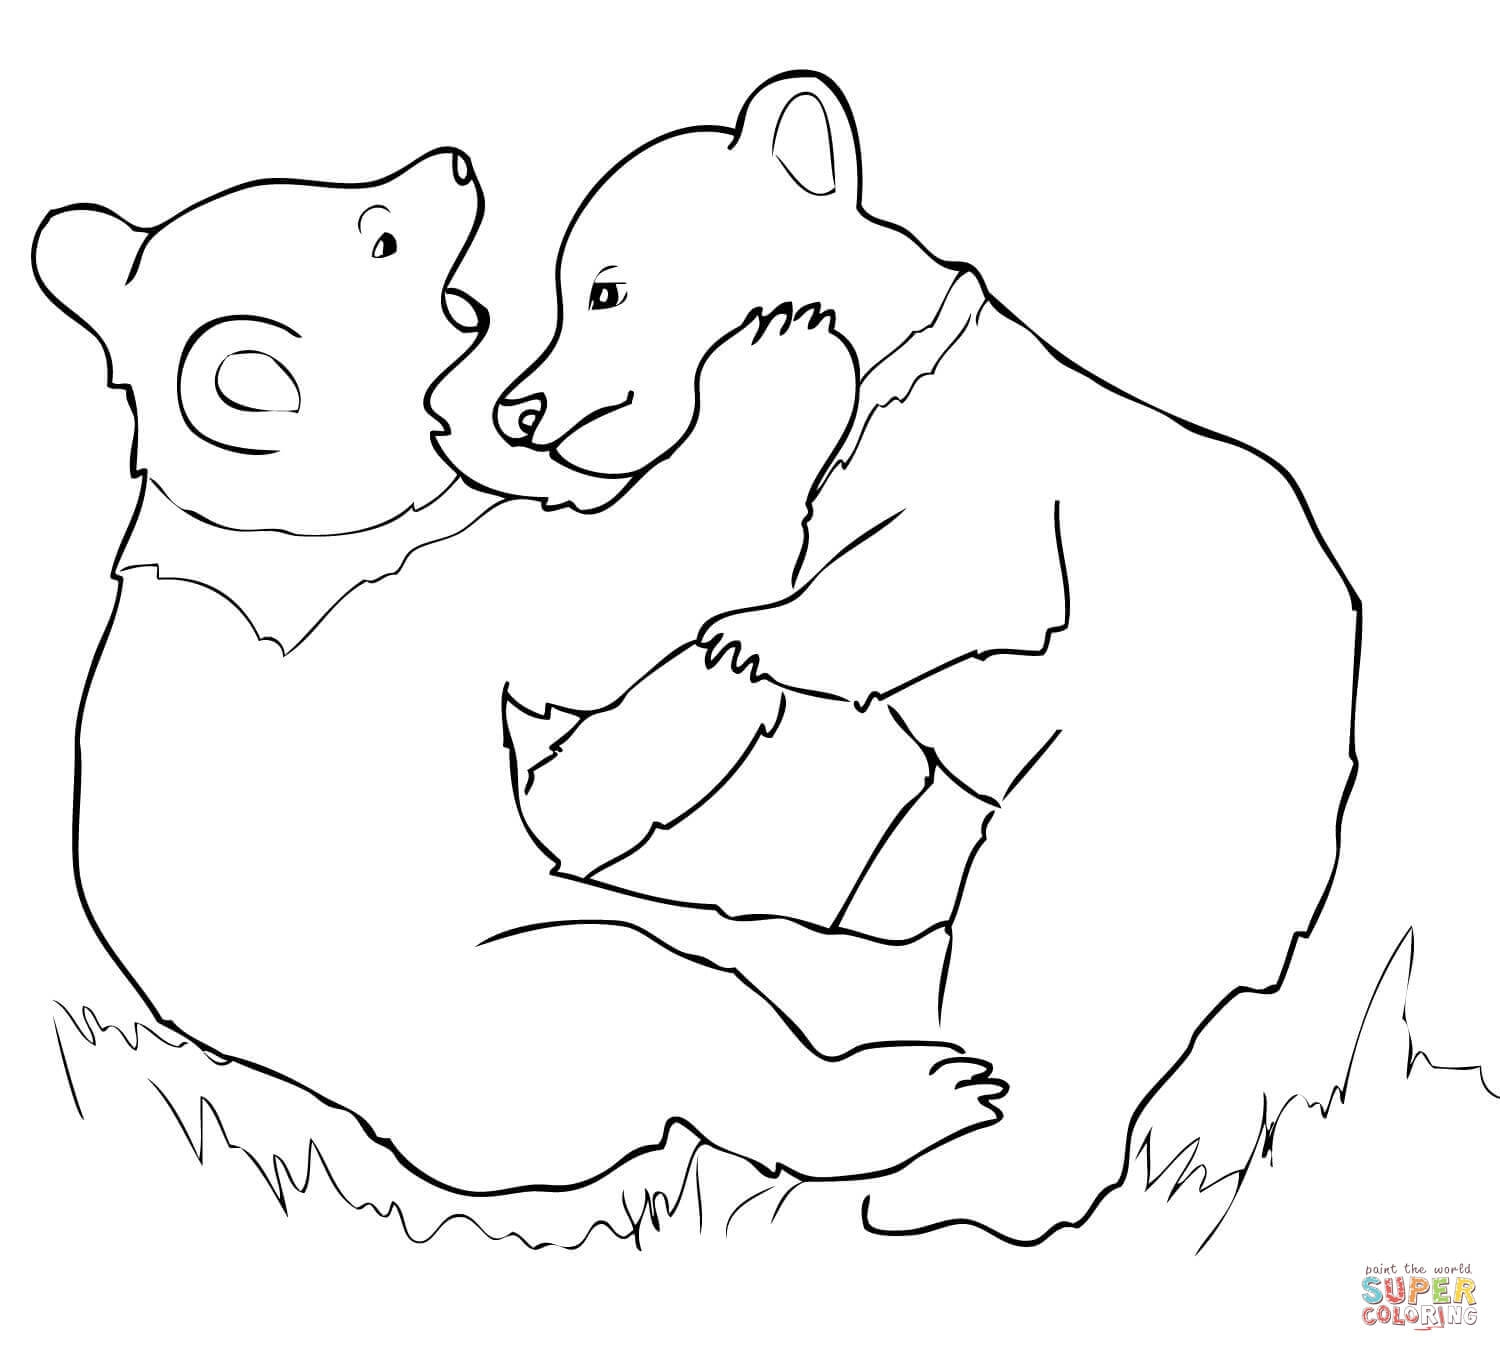 grizzly bear coloring page - grizzly bear cubs playing